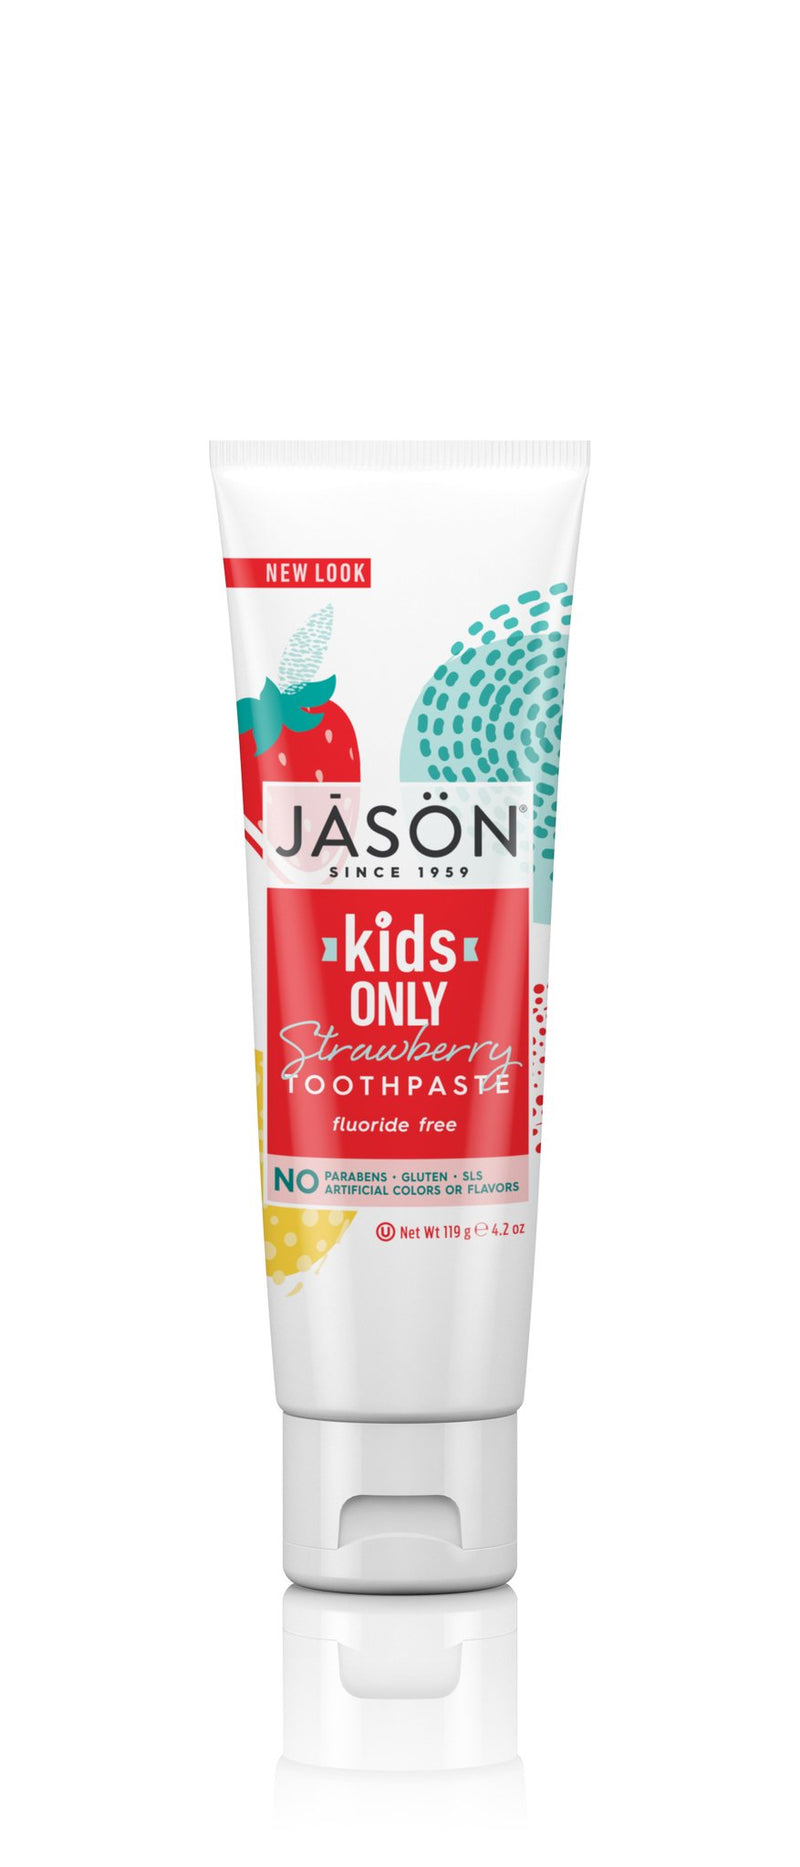 Jason Kids Only All Natural Toothpaste Strawberry Flavour